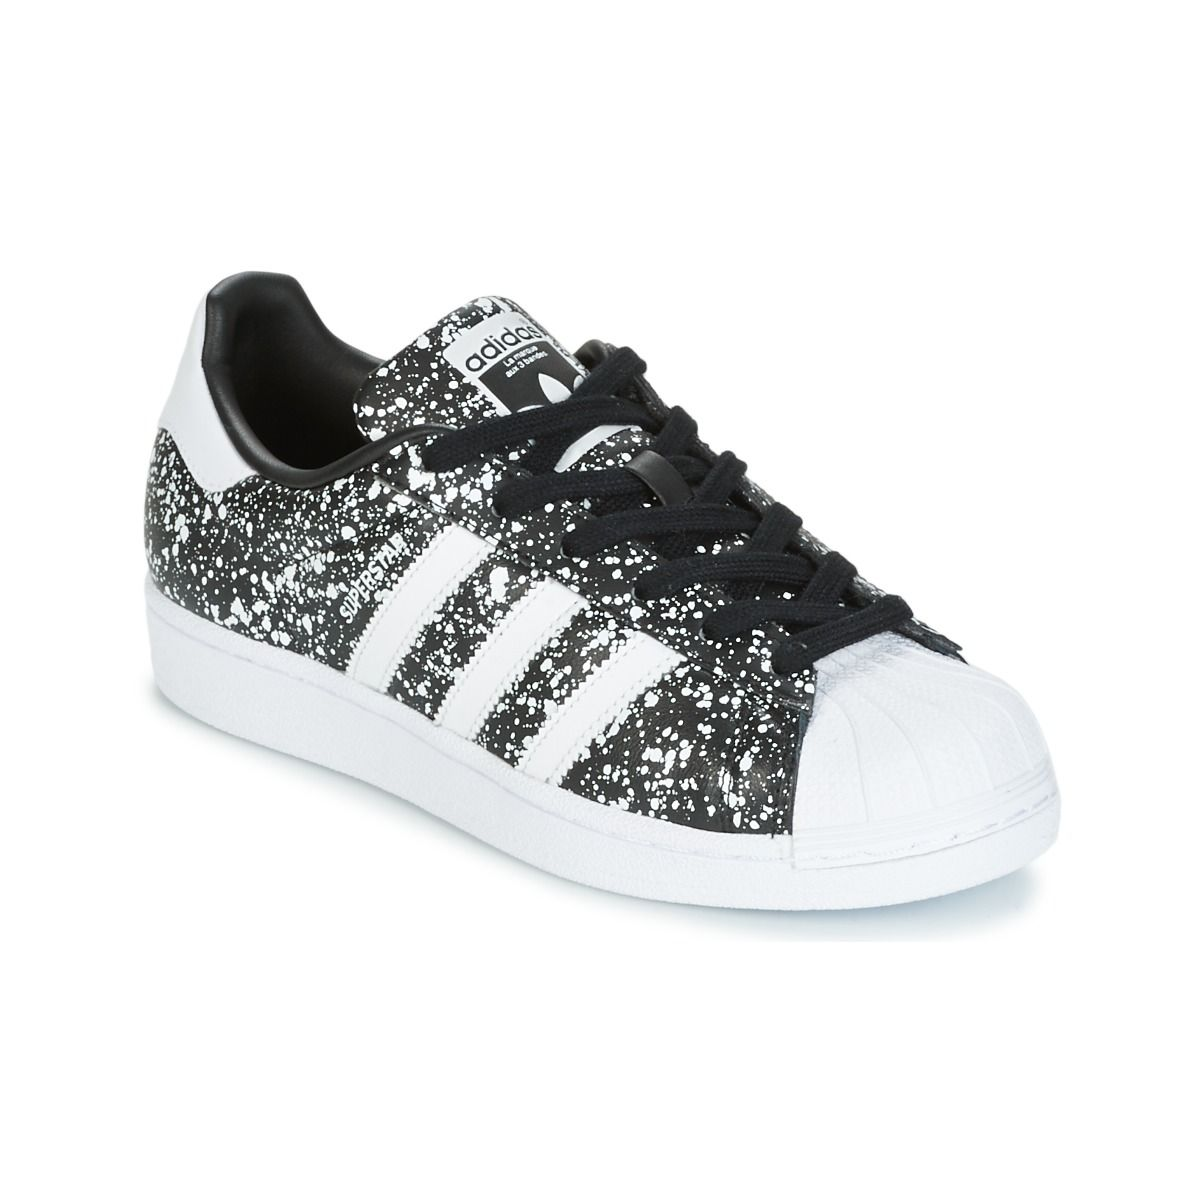 Baskets Originals Blanc Noir W Adidas Superstar Femme Pas Cher XROwdq